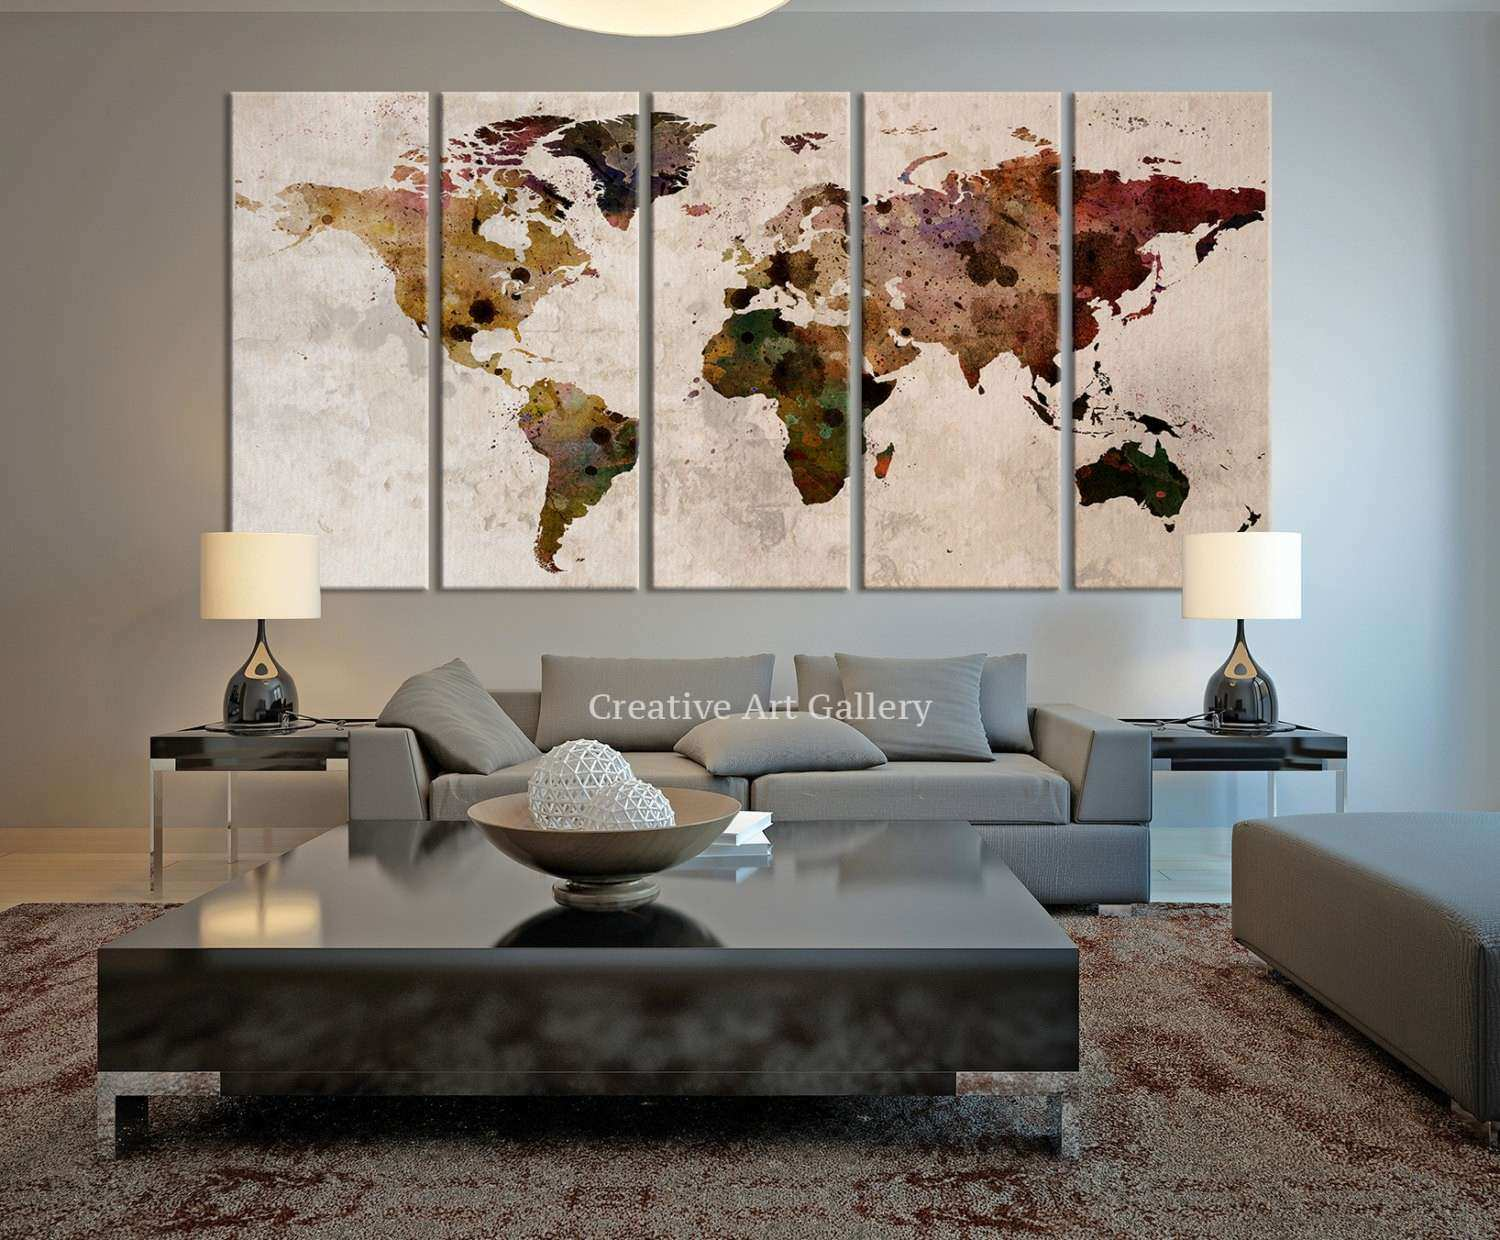 Oversized wall art fresh world map canvas print rustic world by oversized wall art fresh world map canvas print rustic world by extra wallart gumiabroncs Image collections